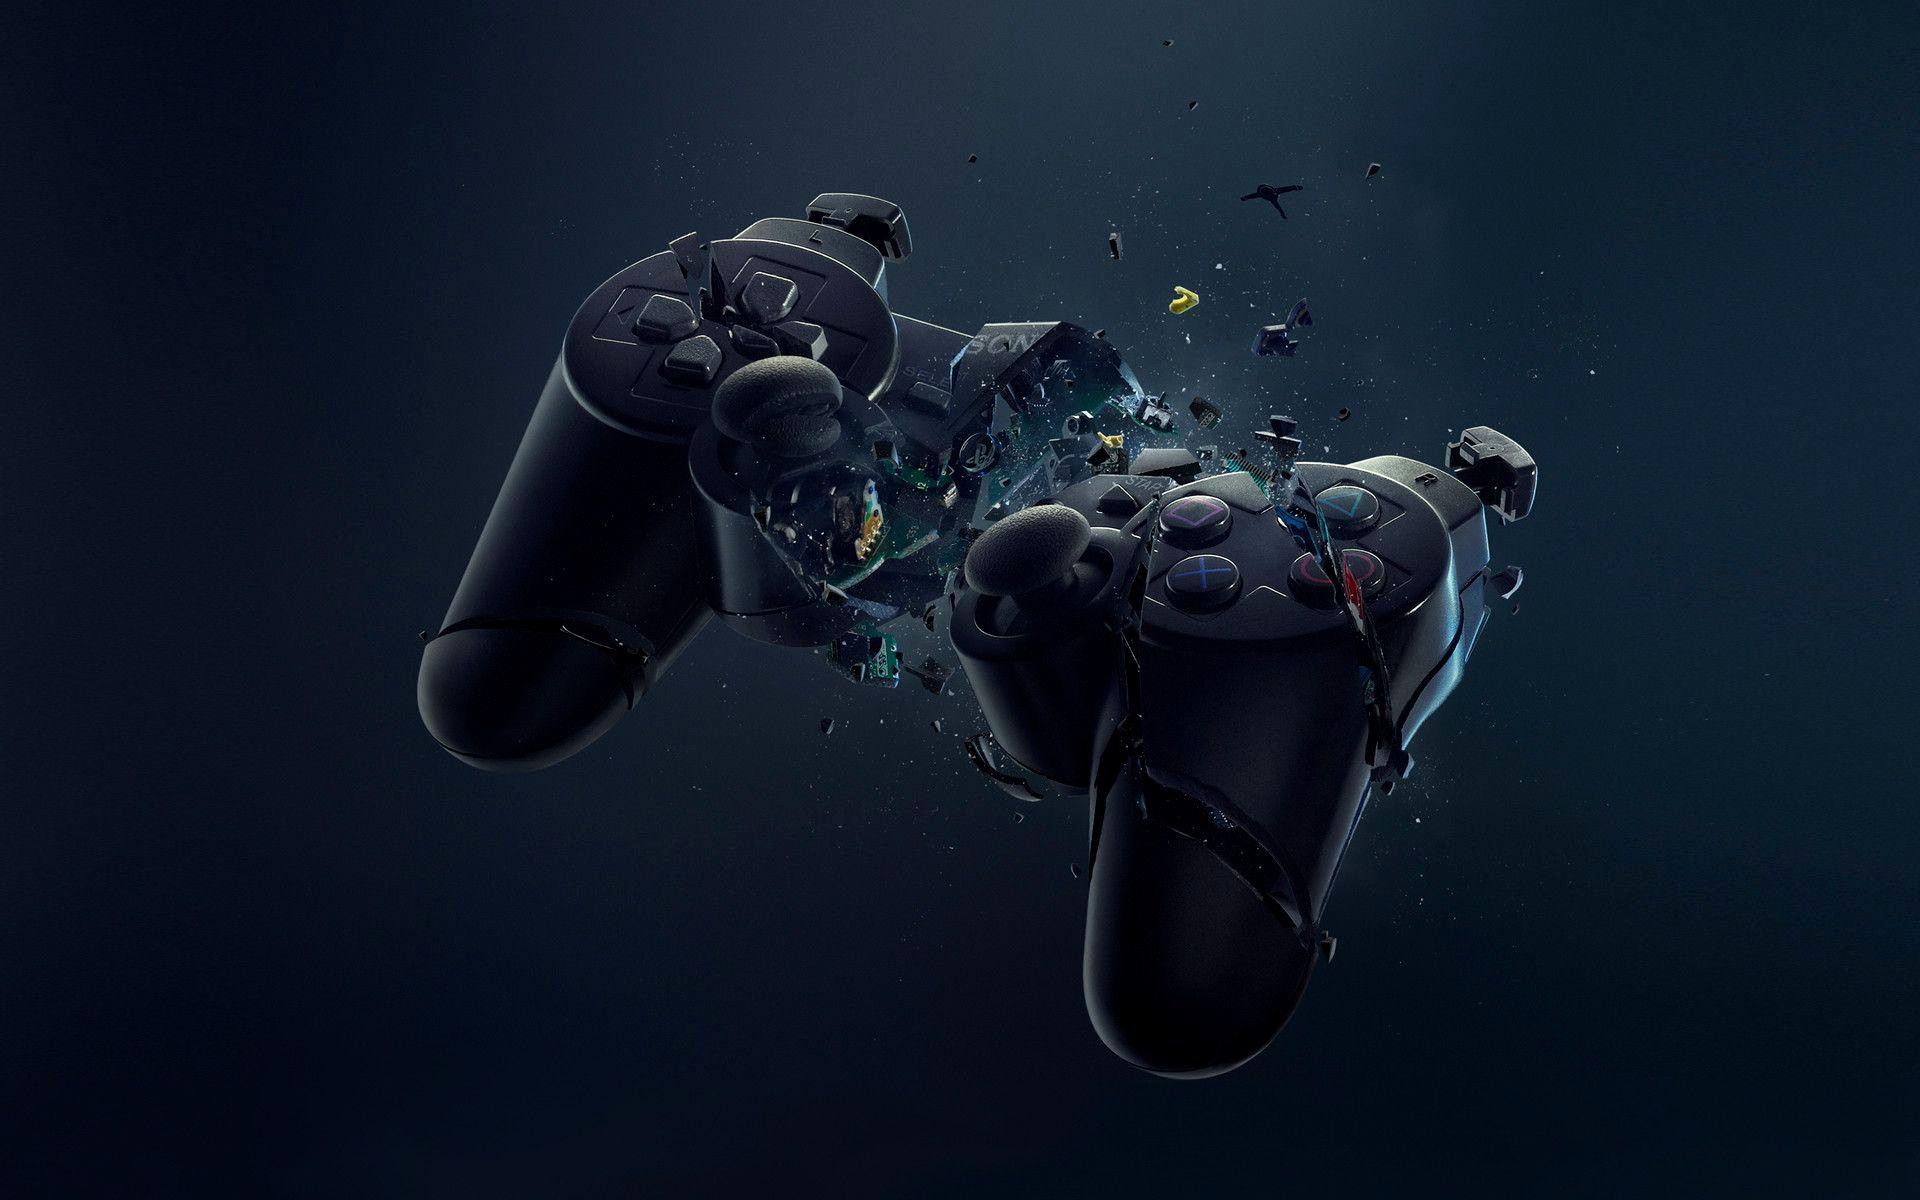 ps3 themes and wallpapers